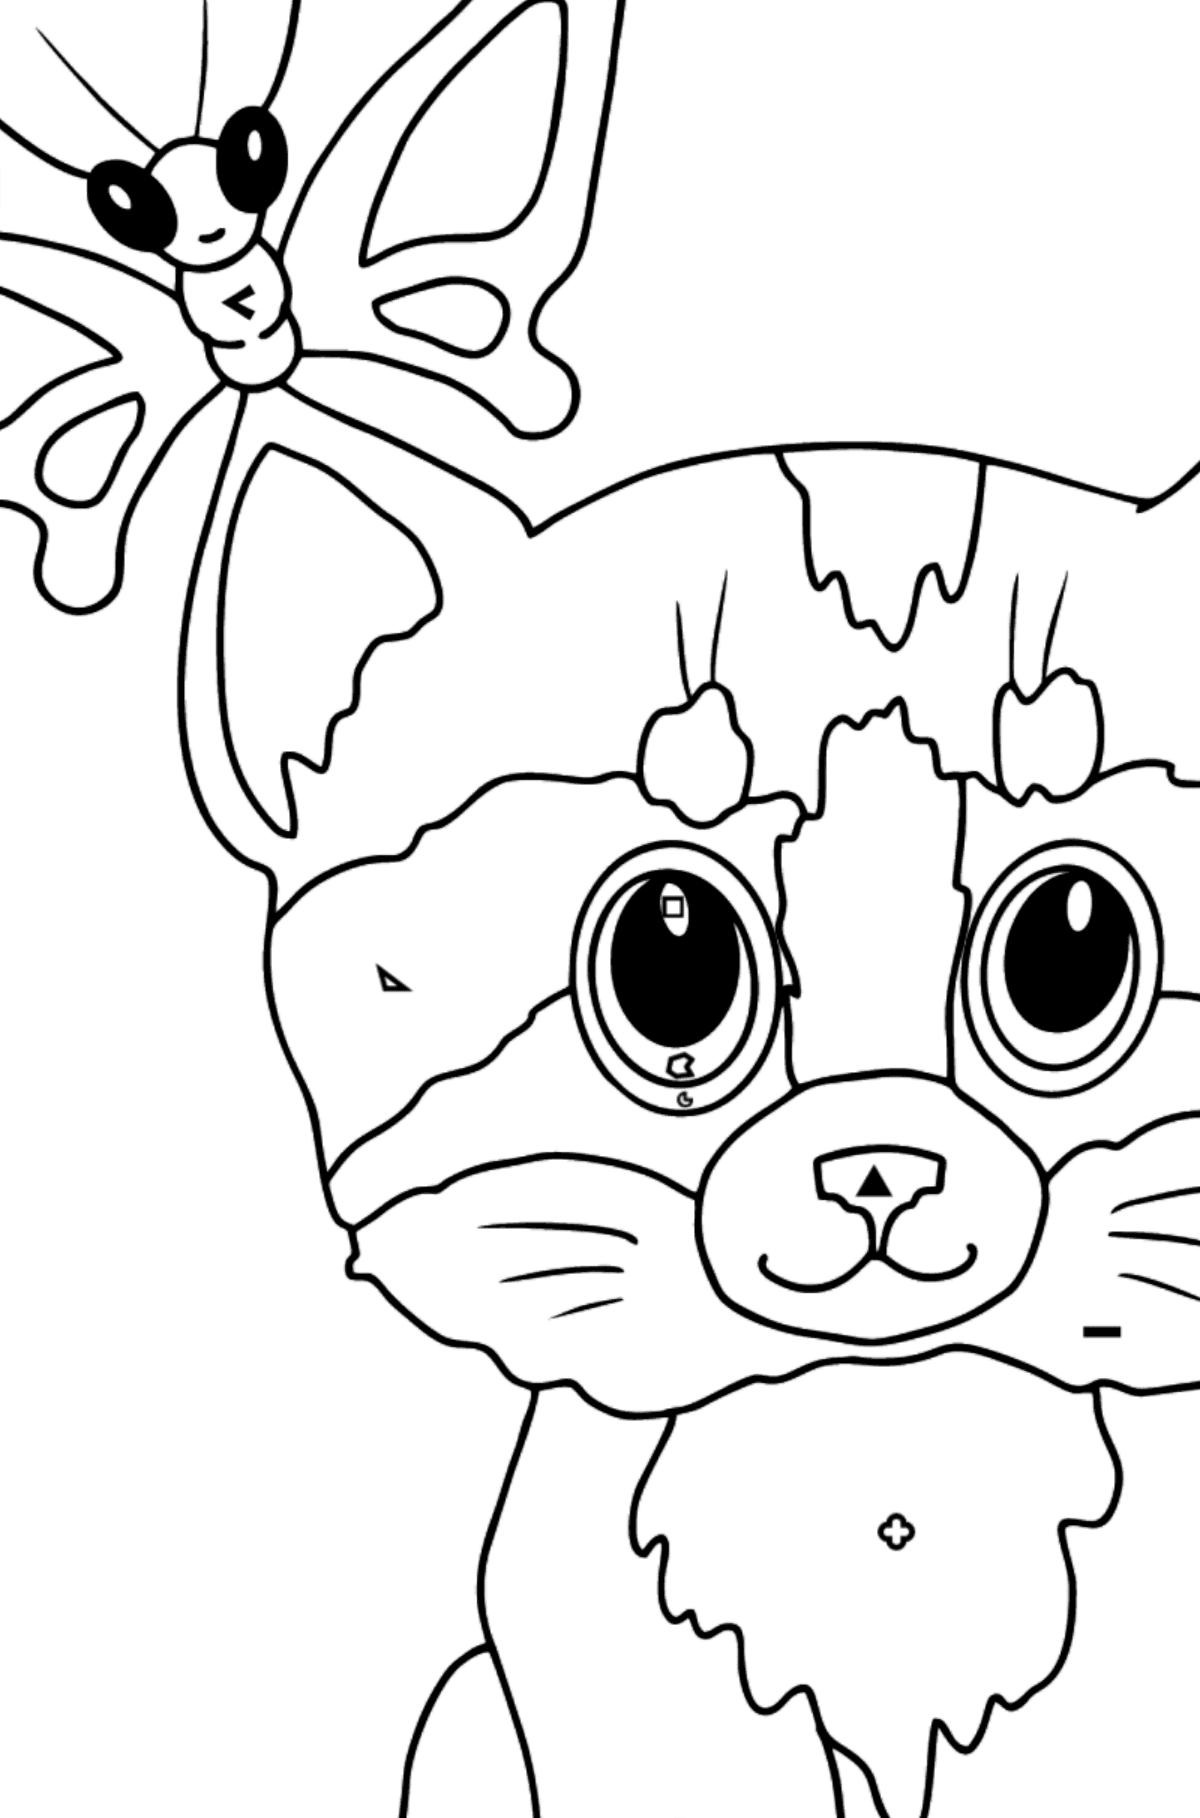 Coloring Page - A Kitten has Caught a Butterfly - Coloring by Symbols and Geometric Shapes for Kids